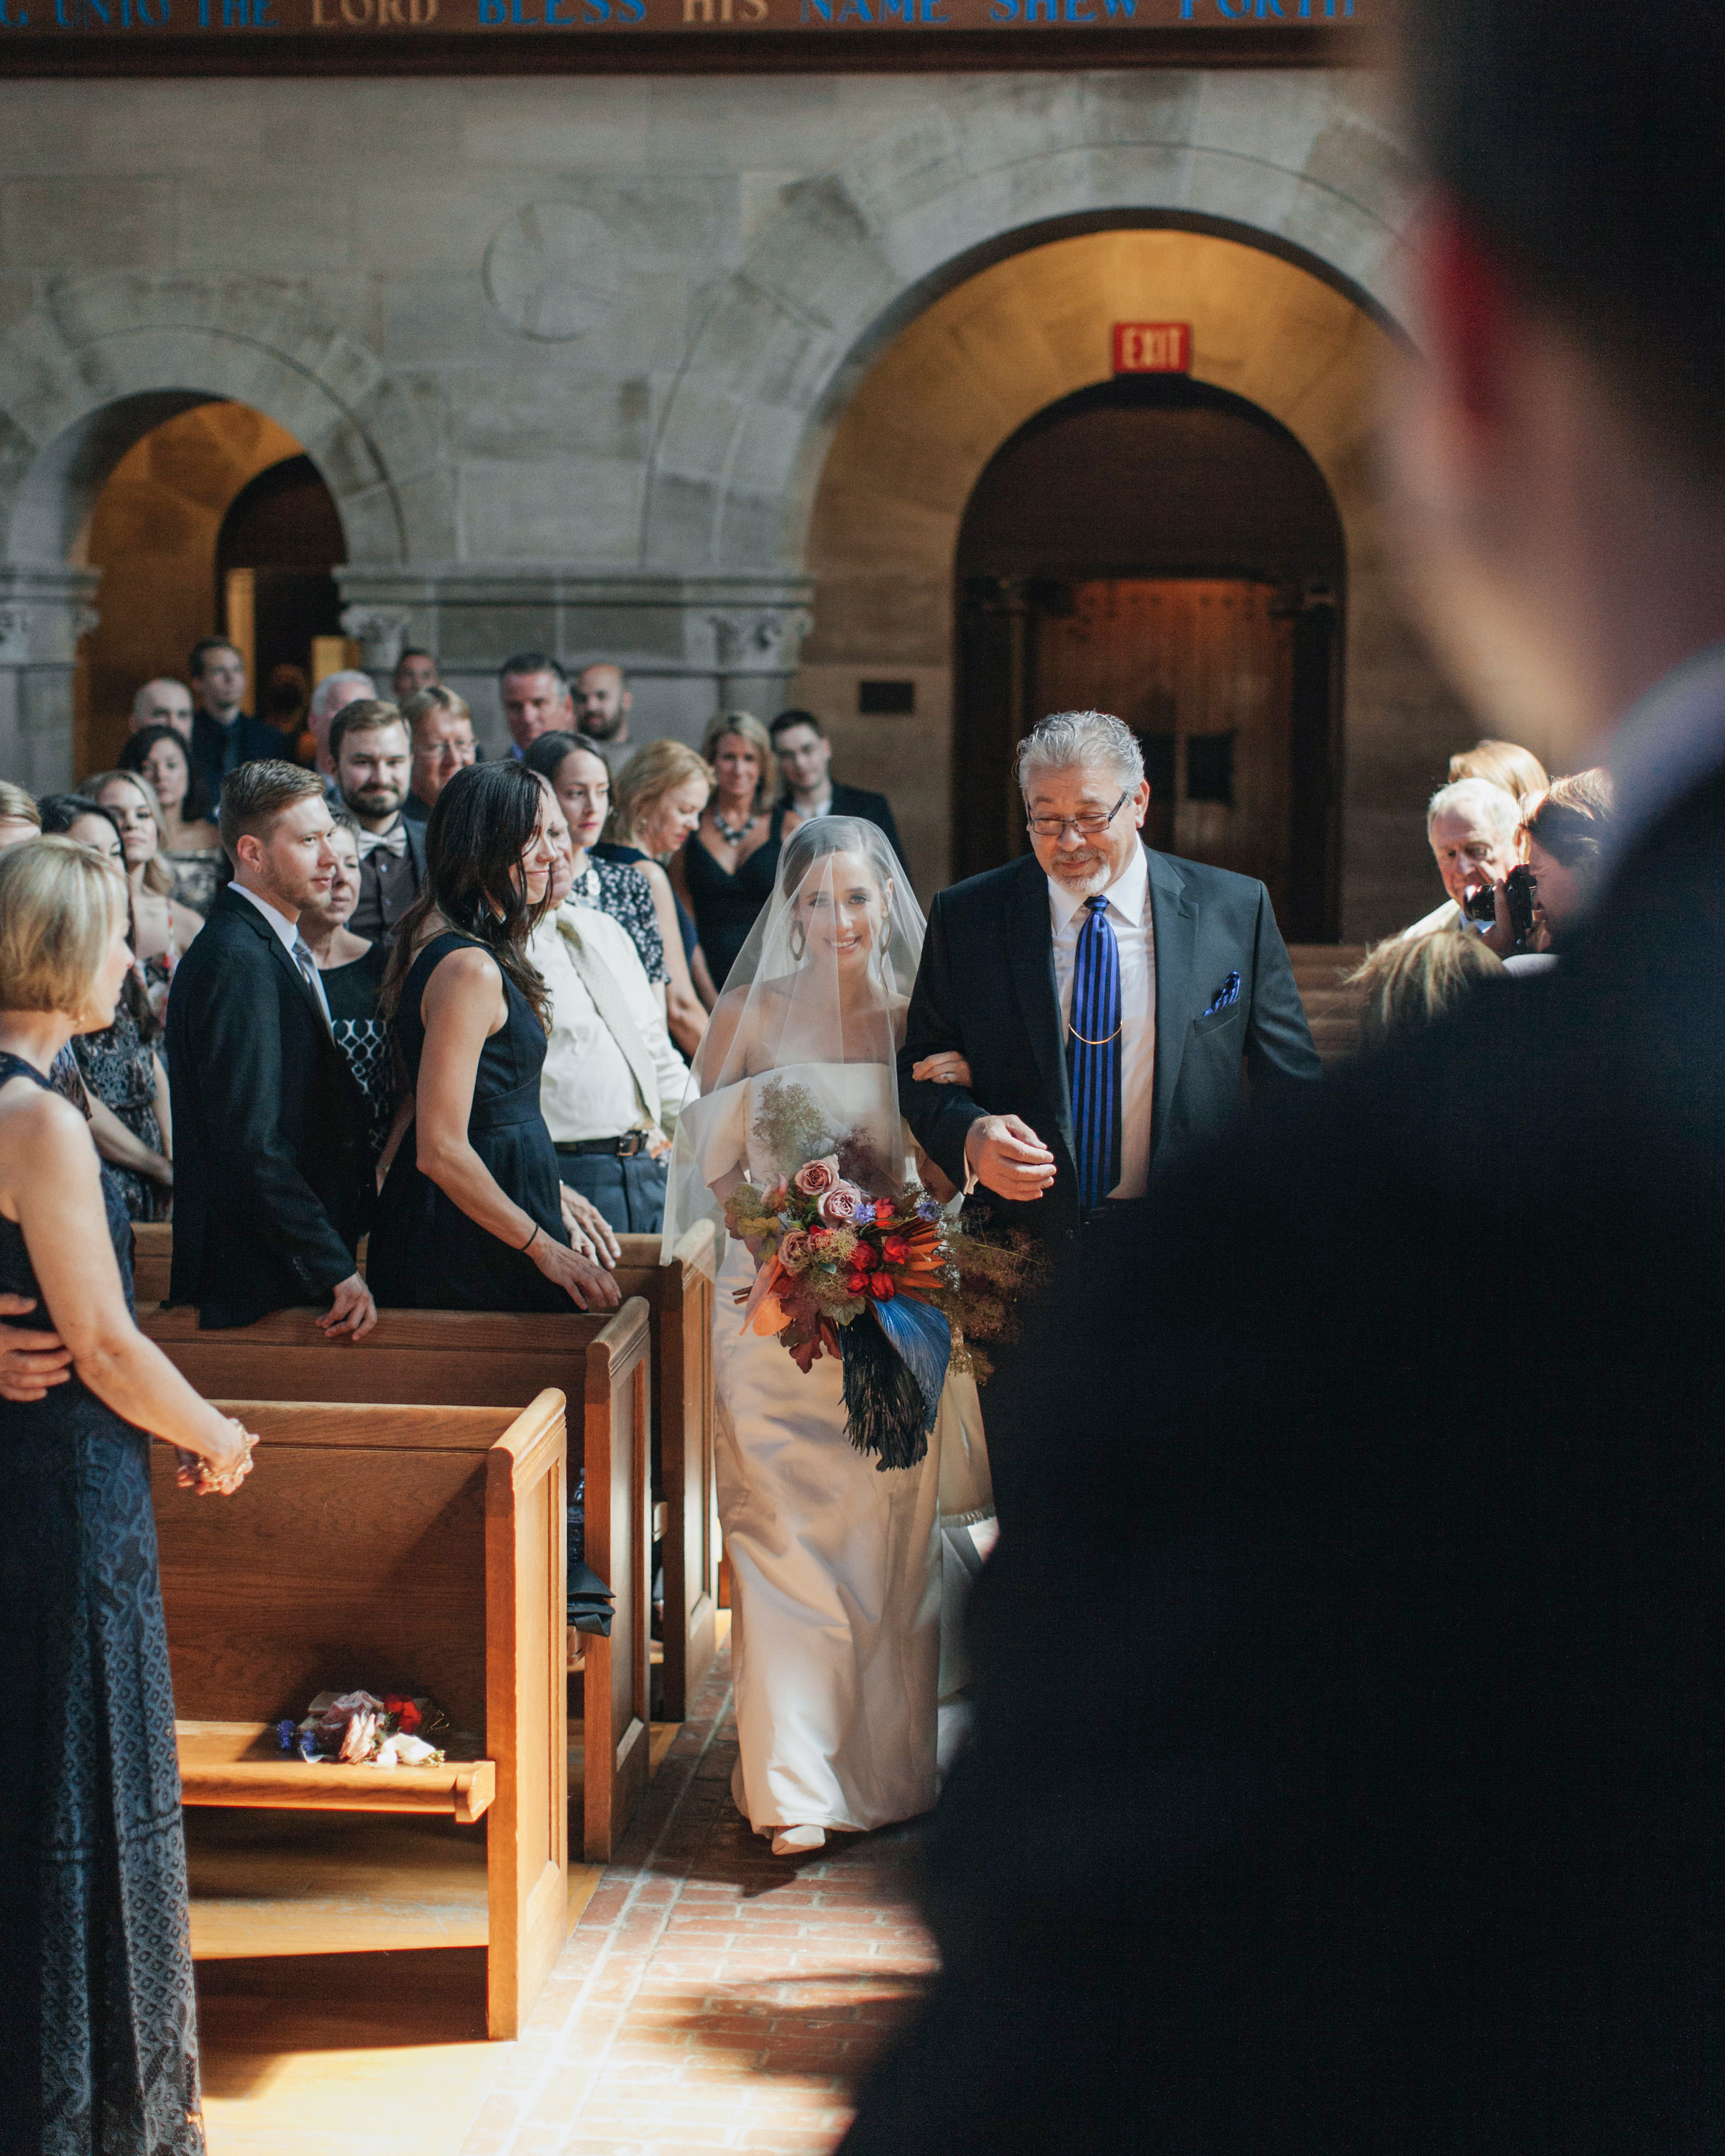 madison kyle wedding church processional